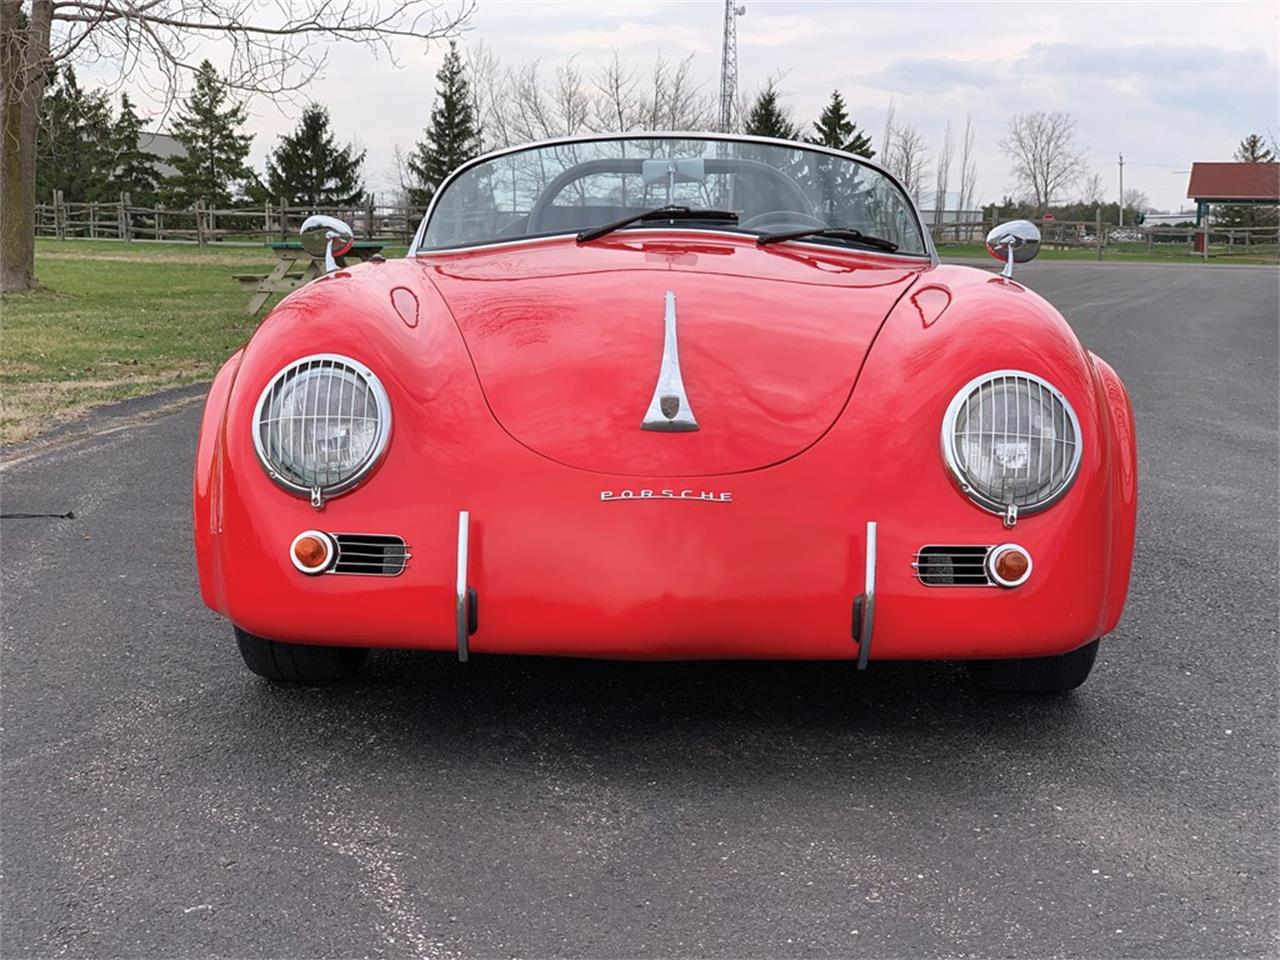 Large Picture of Classic '57 Porsche 356 Replica located in Auburn Indiana Auction Vehicle - Q19W